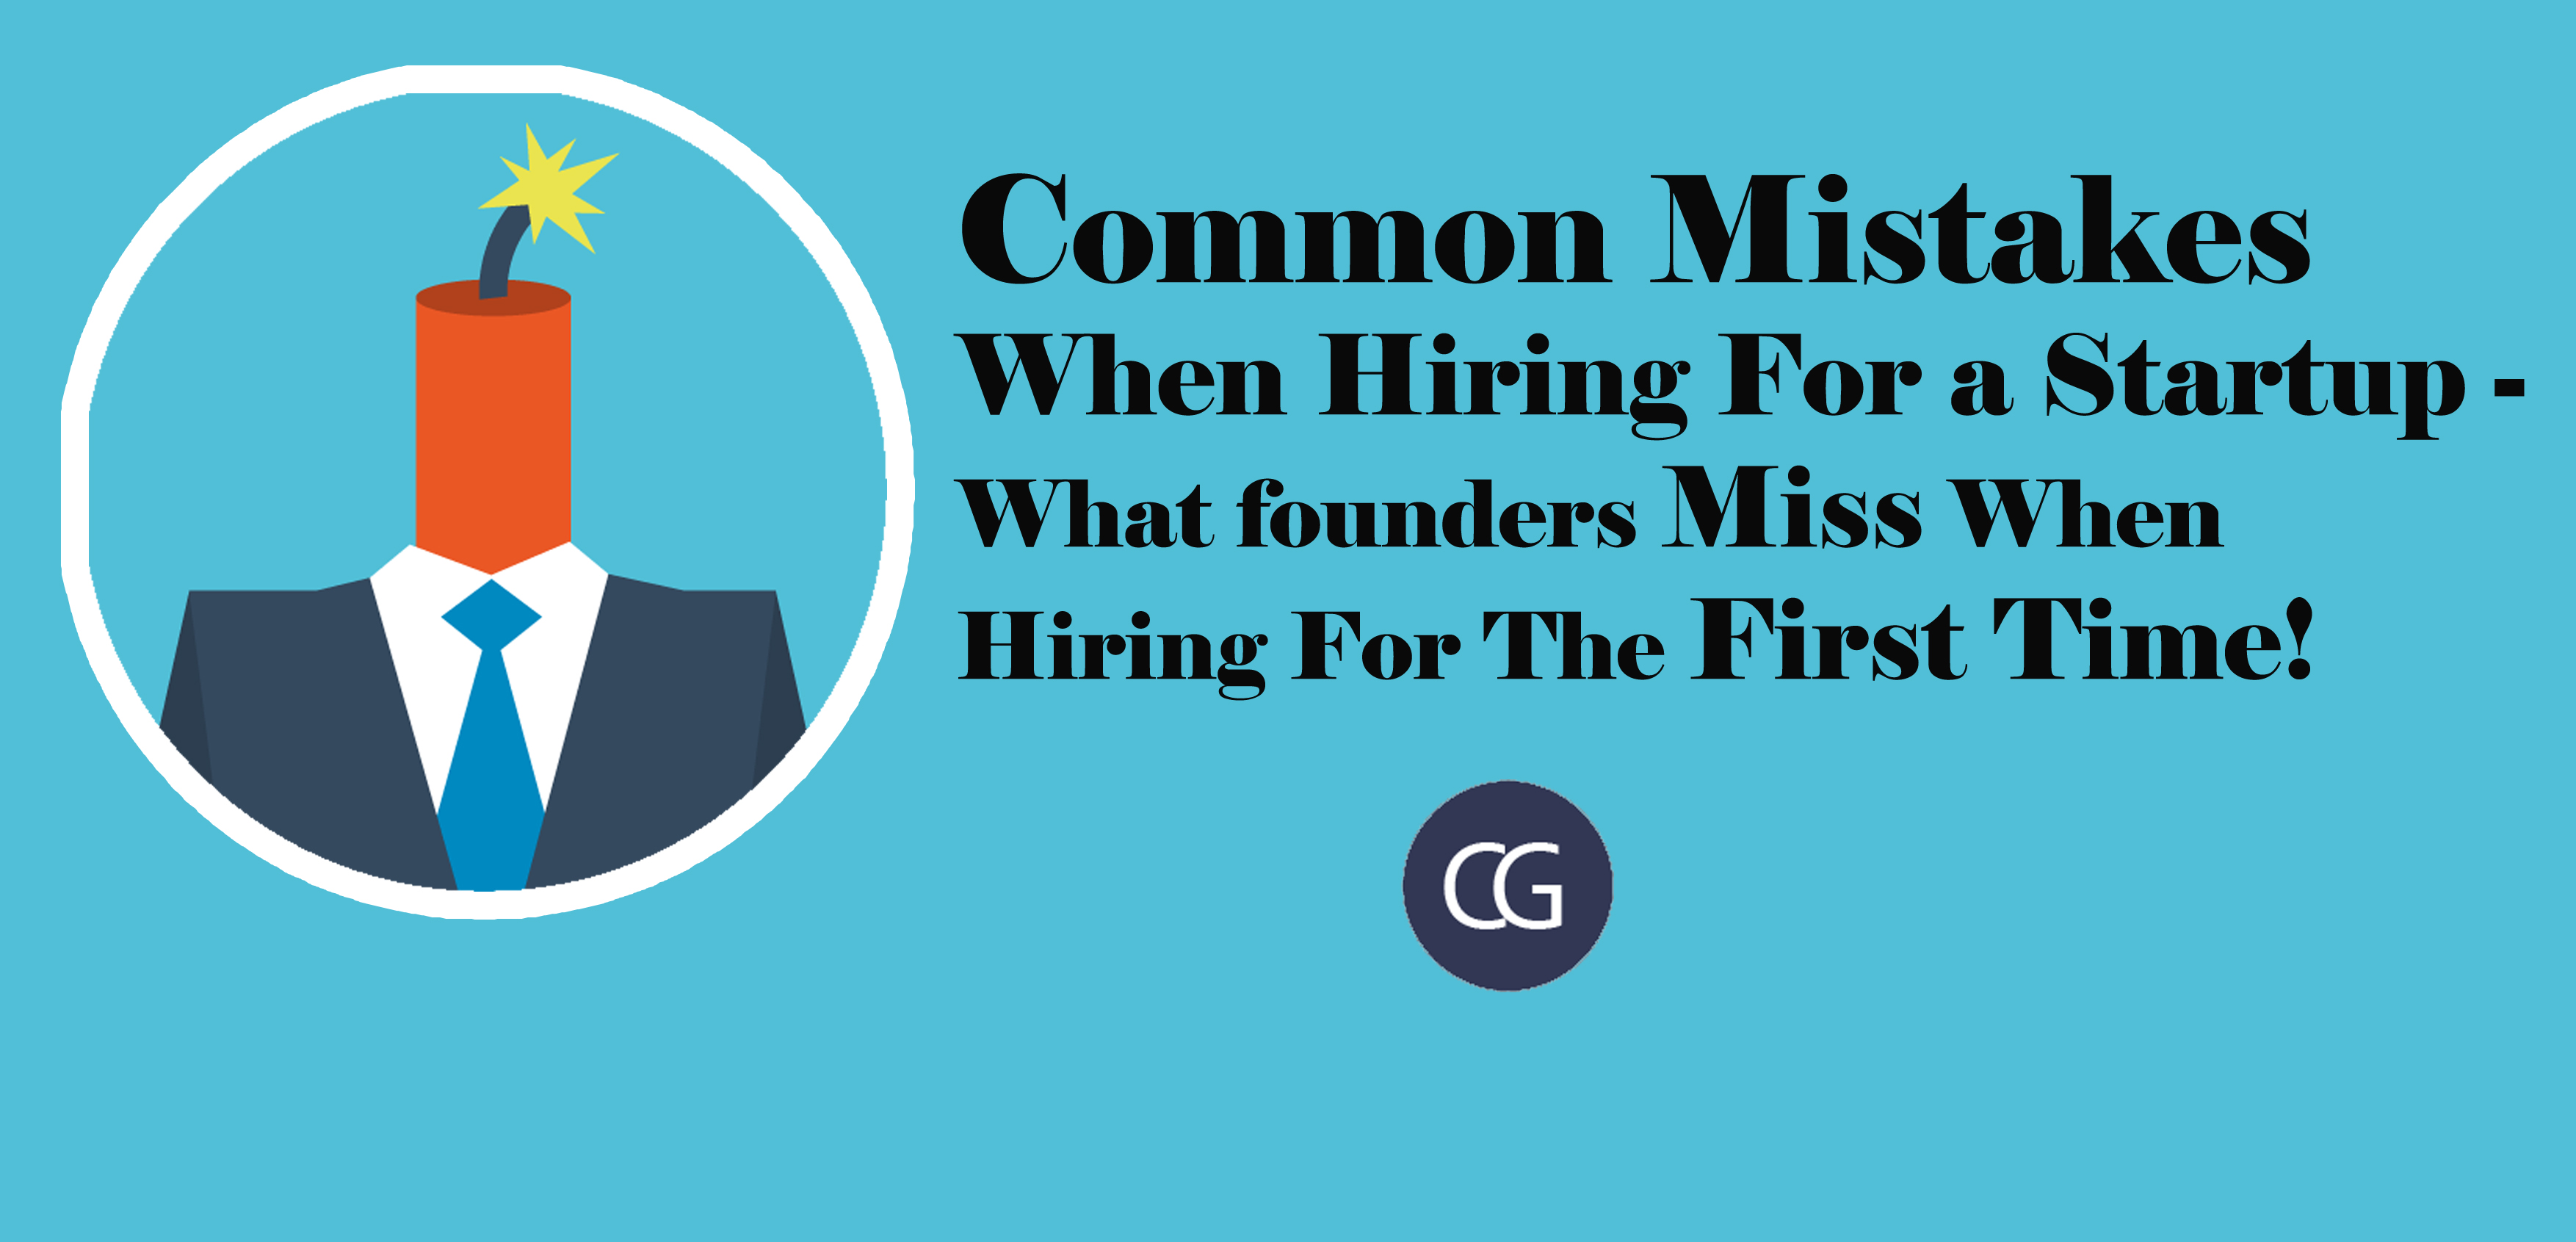 common-mistakes-when-hiring-for-a-startup